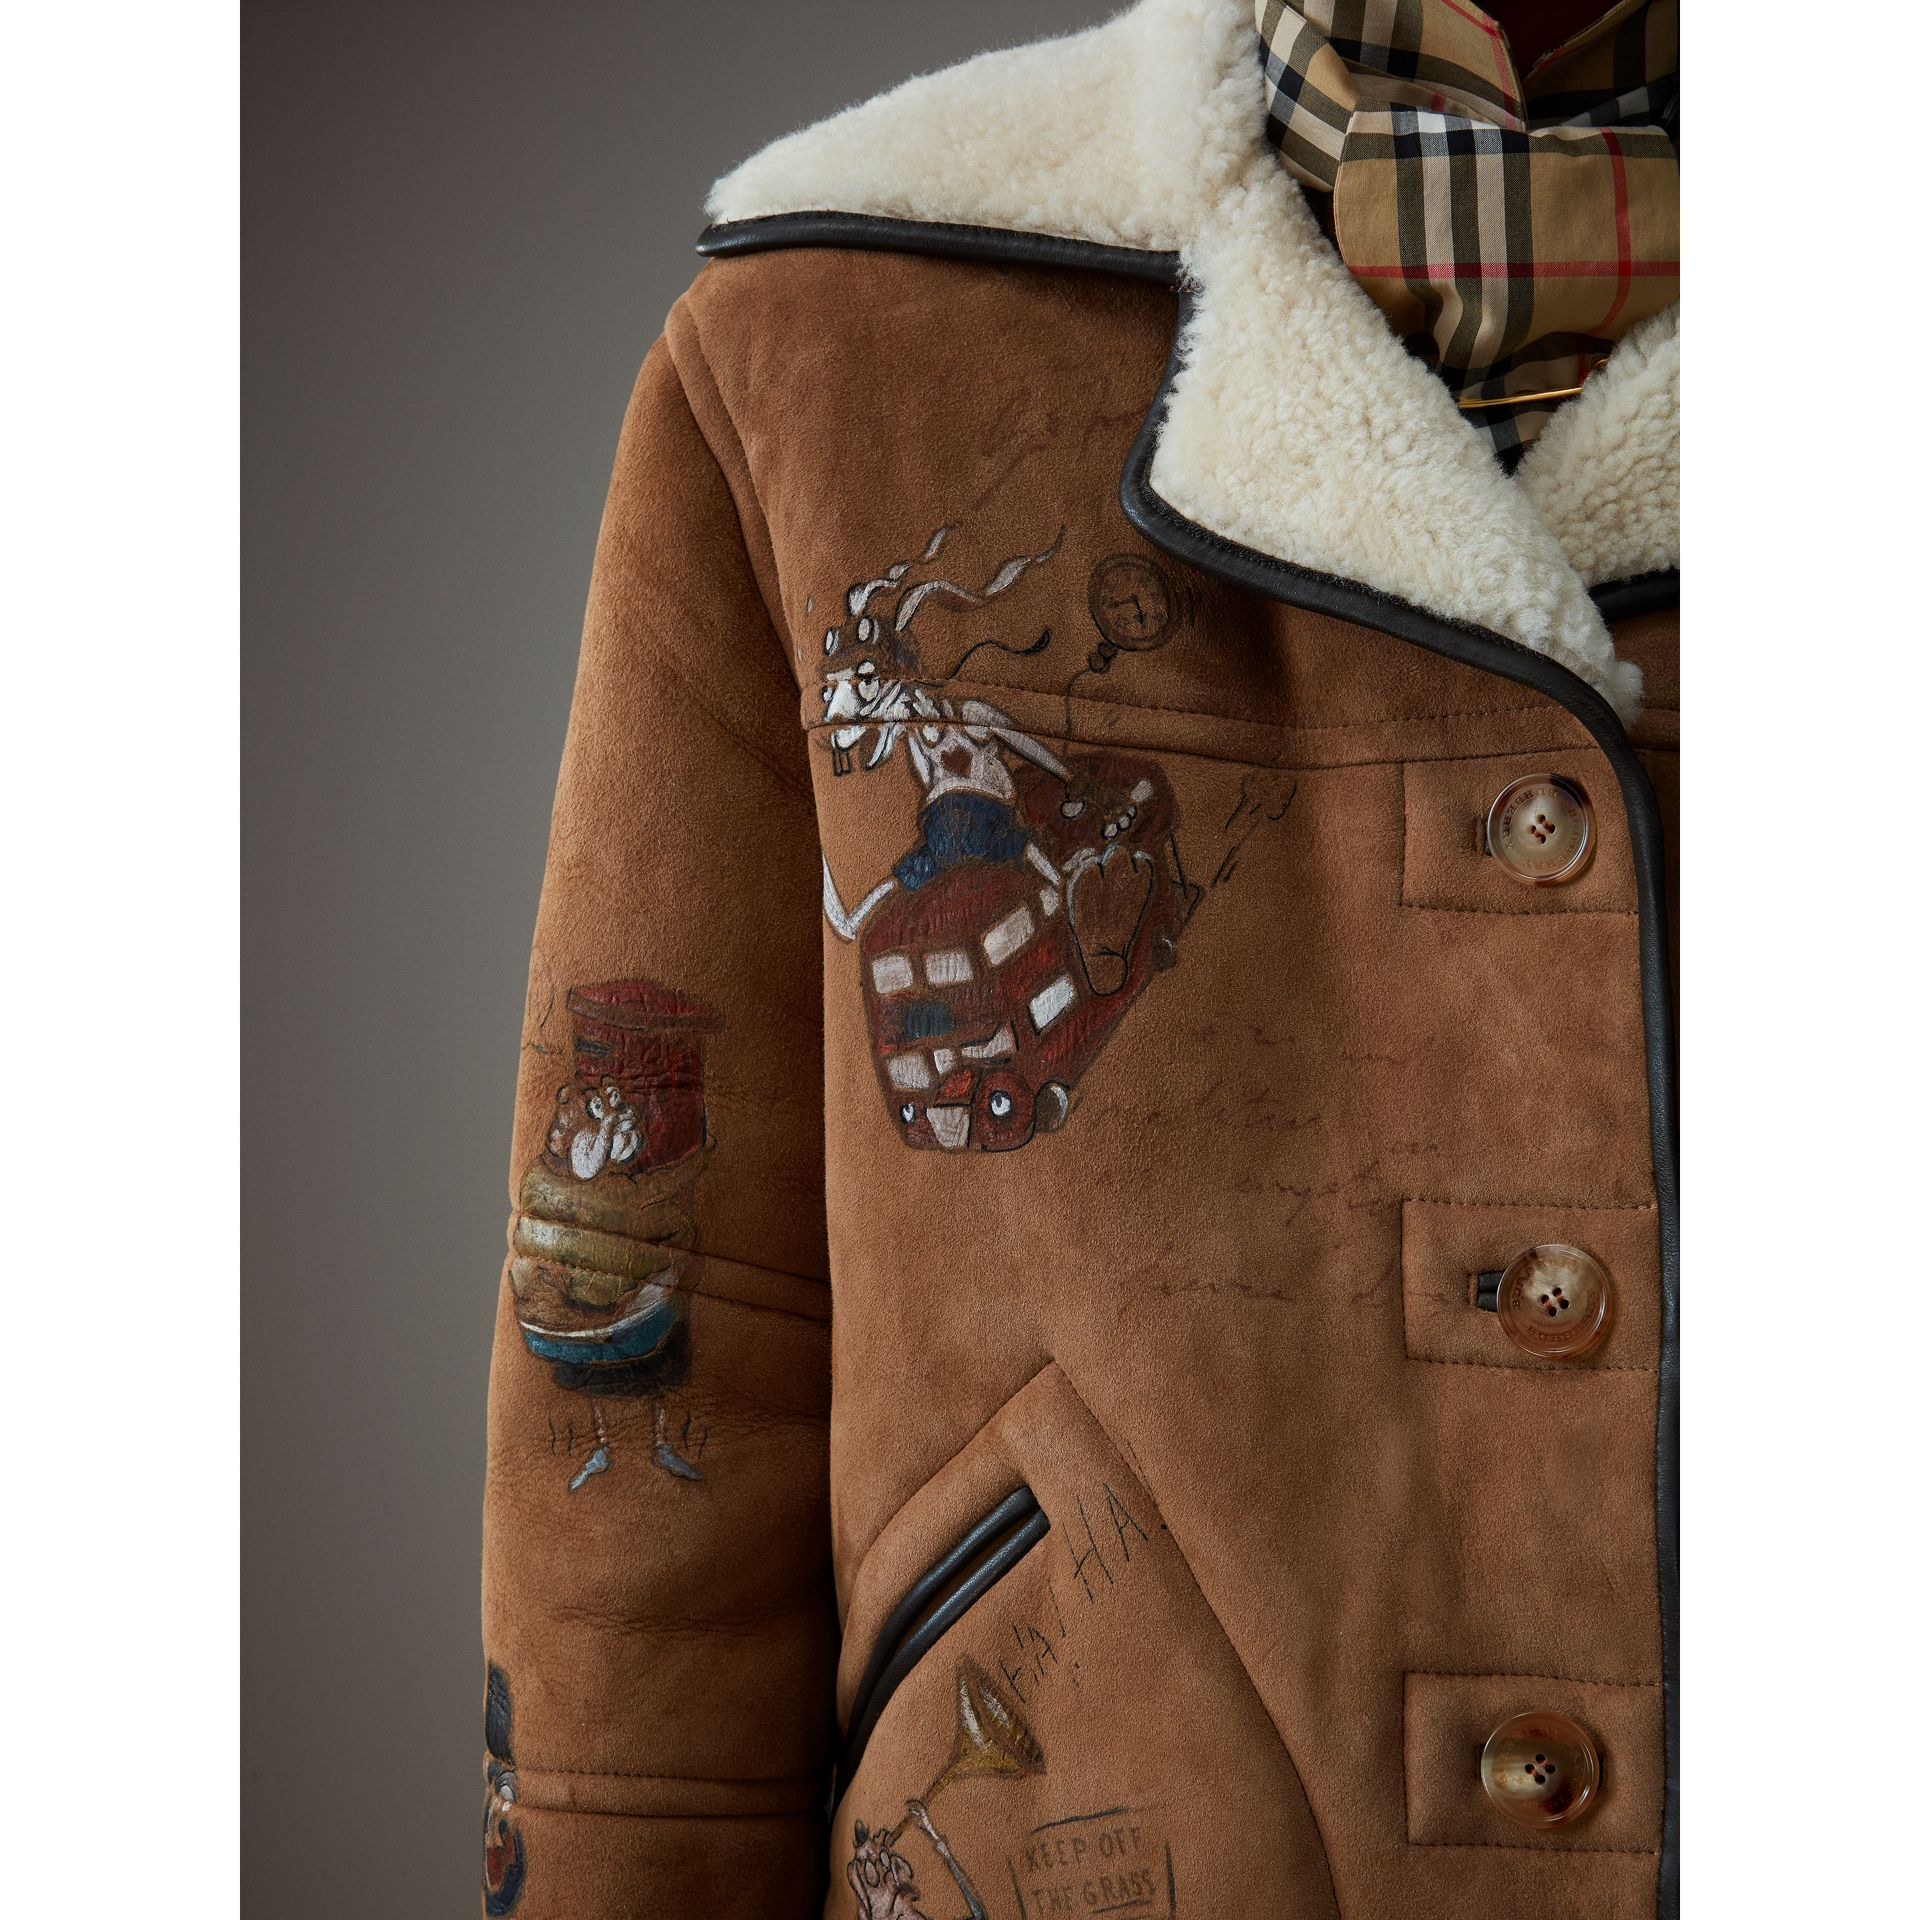 Sketch Print Shearling Jacket in Caramel - Women | Burberry - gallery image 1